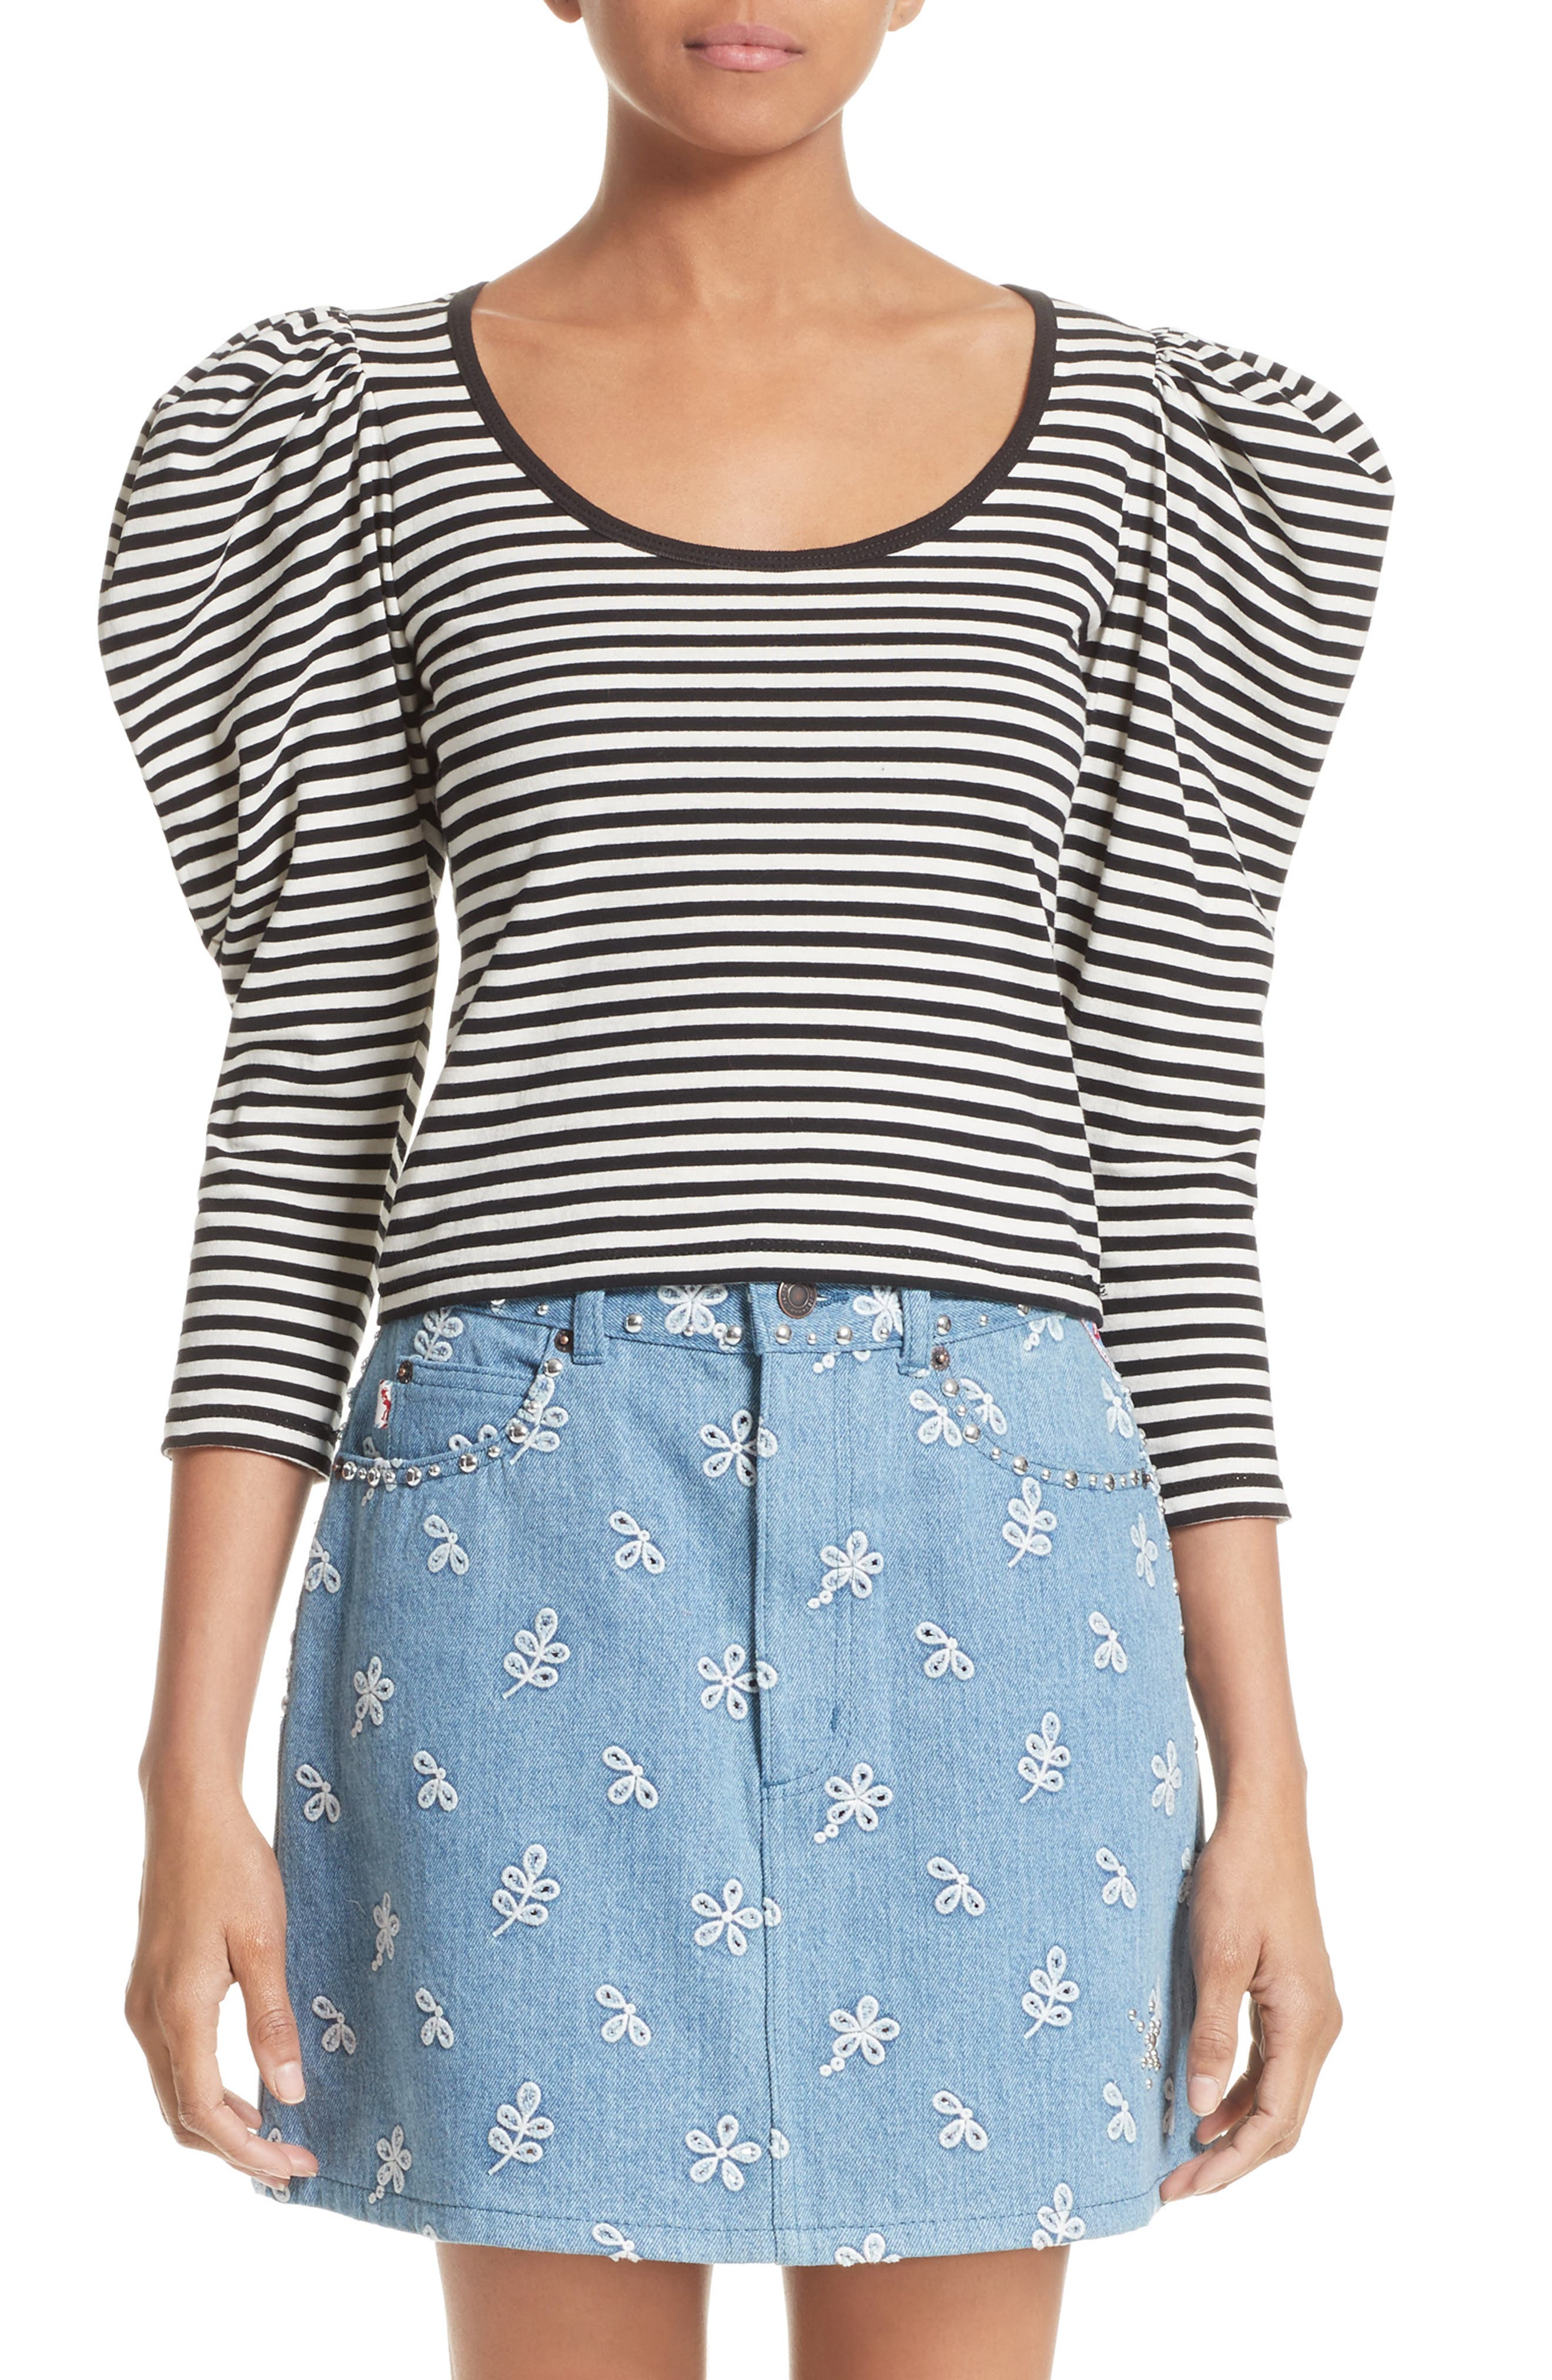 Main Image - MARC JACOBS Stripe Cotton Puff Sleeve Top